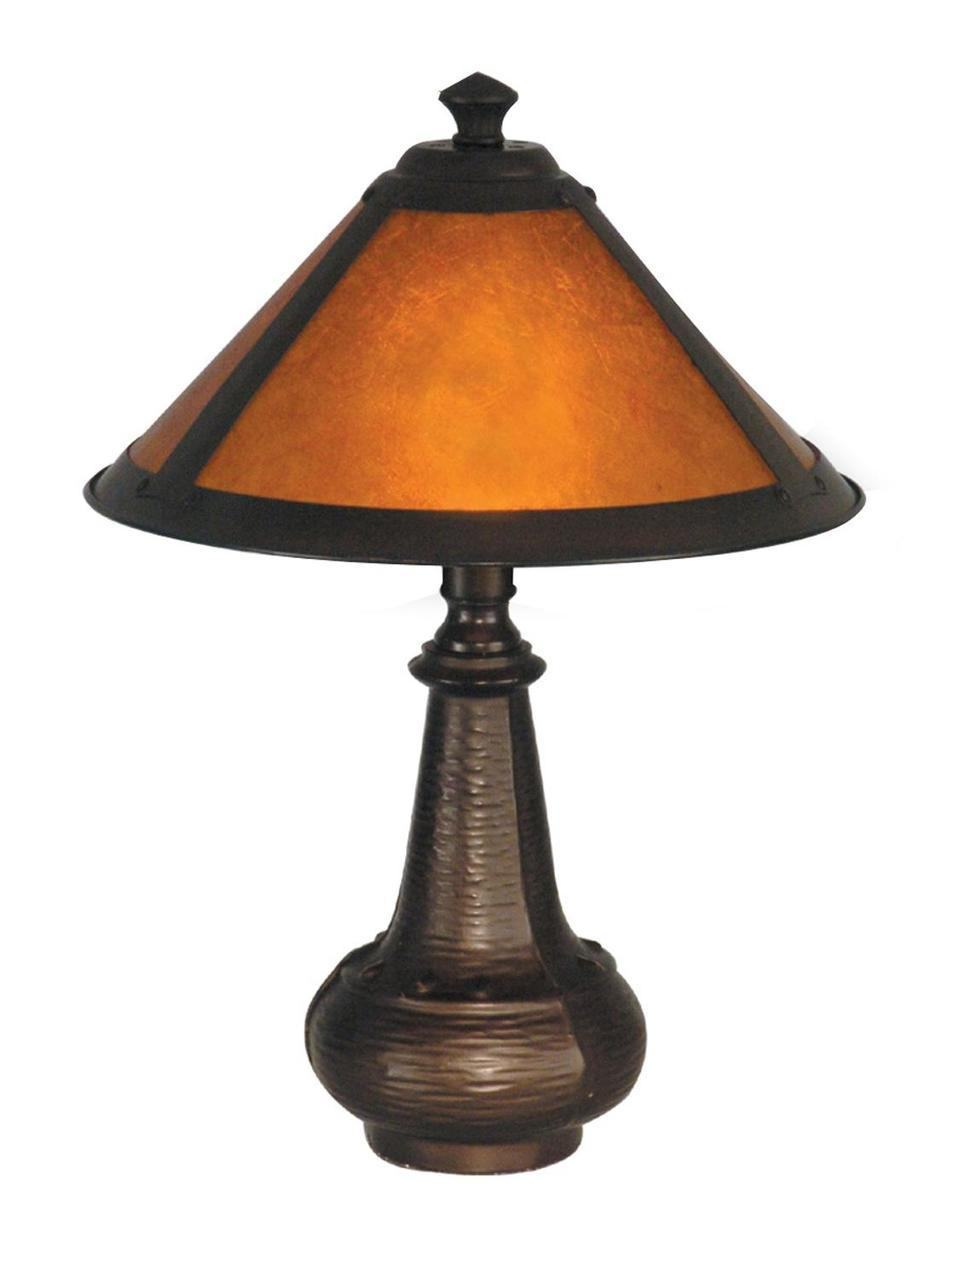 antique bronze amber hunter accent table lamp with mica cone shade mid century linen runner office wall cabinets mirrored bedside ikea waterproof tablecloth black kitchen chairs